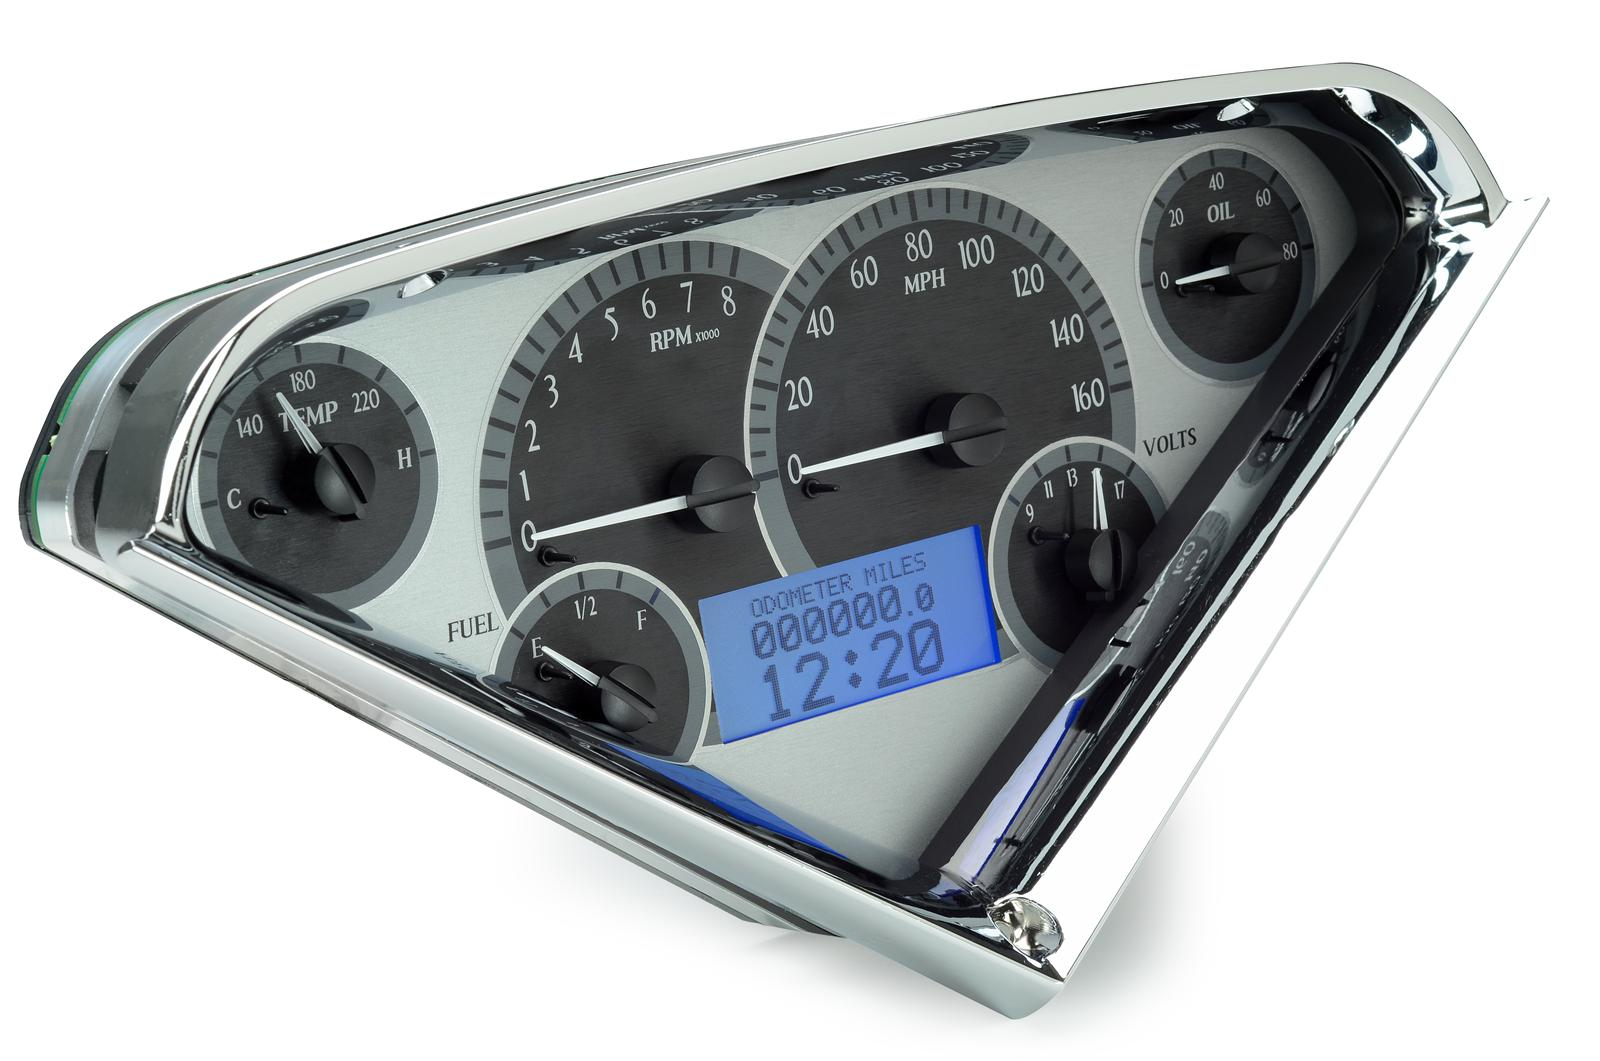 DAKVHX-55C-PU-S-B 1955-59 Chevy Pickup VHX System Satin Alloy Style Face Blue Display